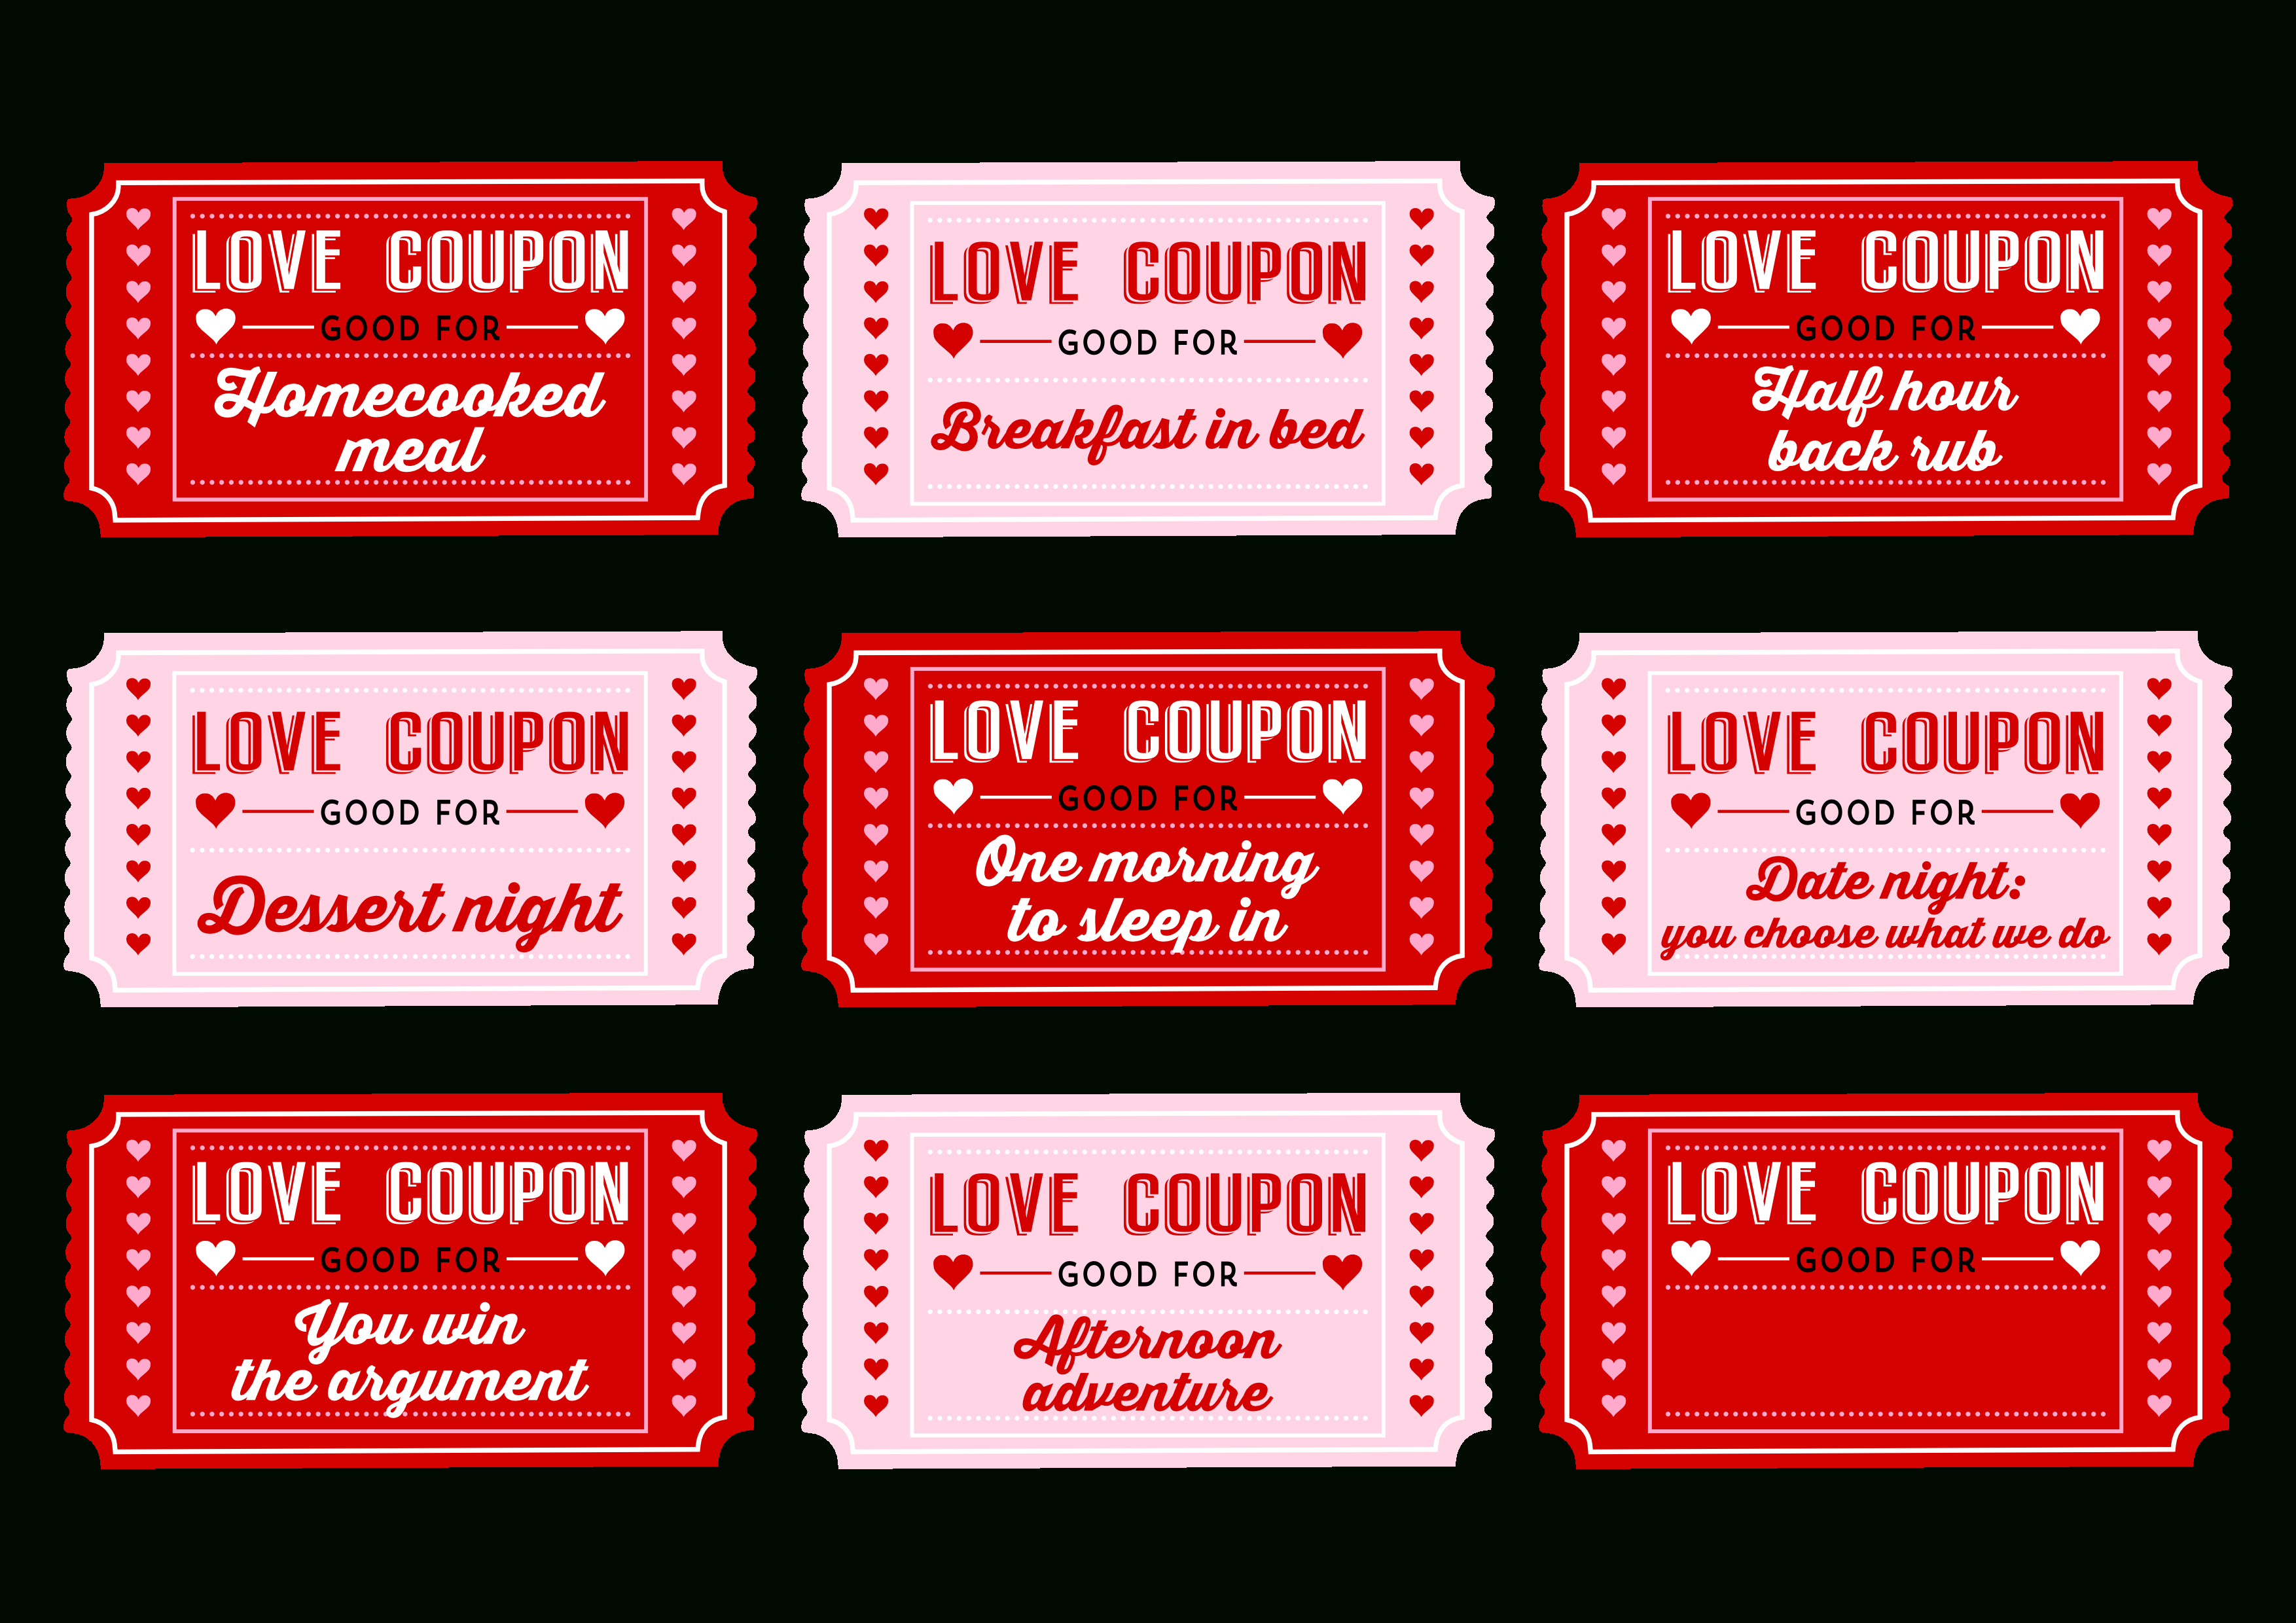 Free Printable Love Coupons For Couples On Valentine's Day!   Decor - Free Printable Love Certificates For Him